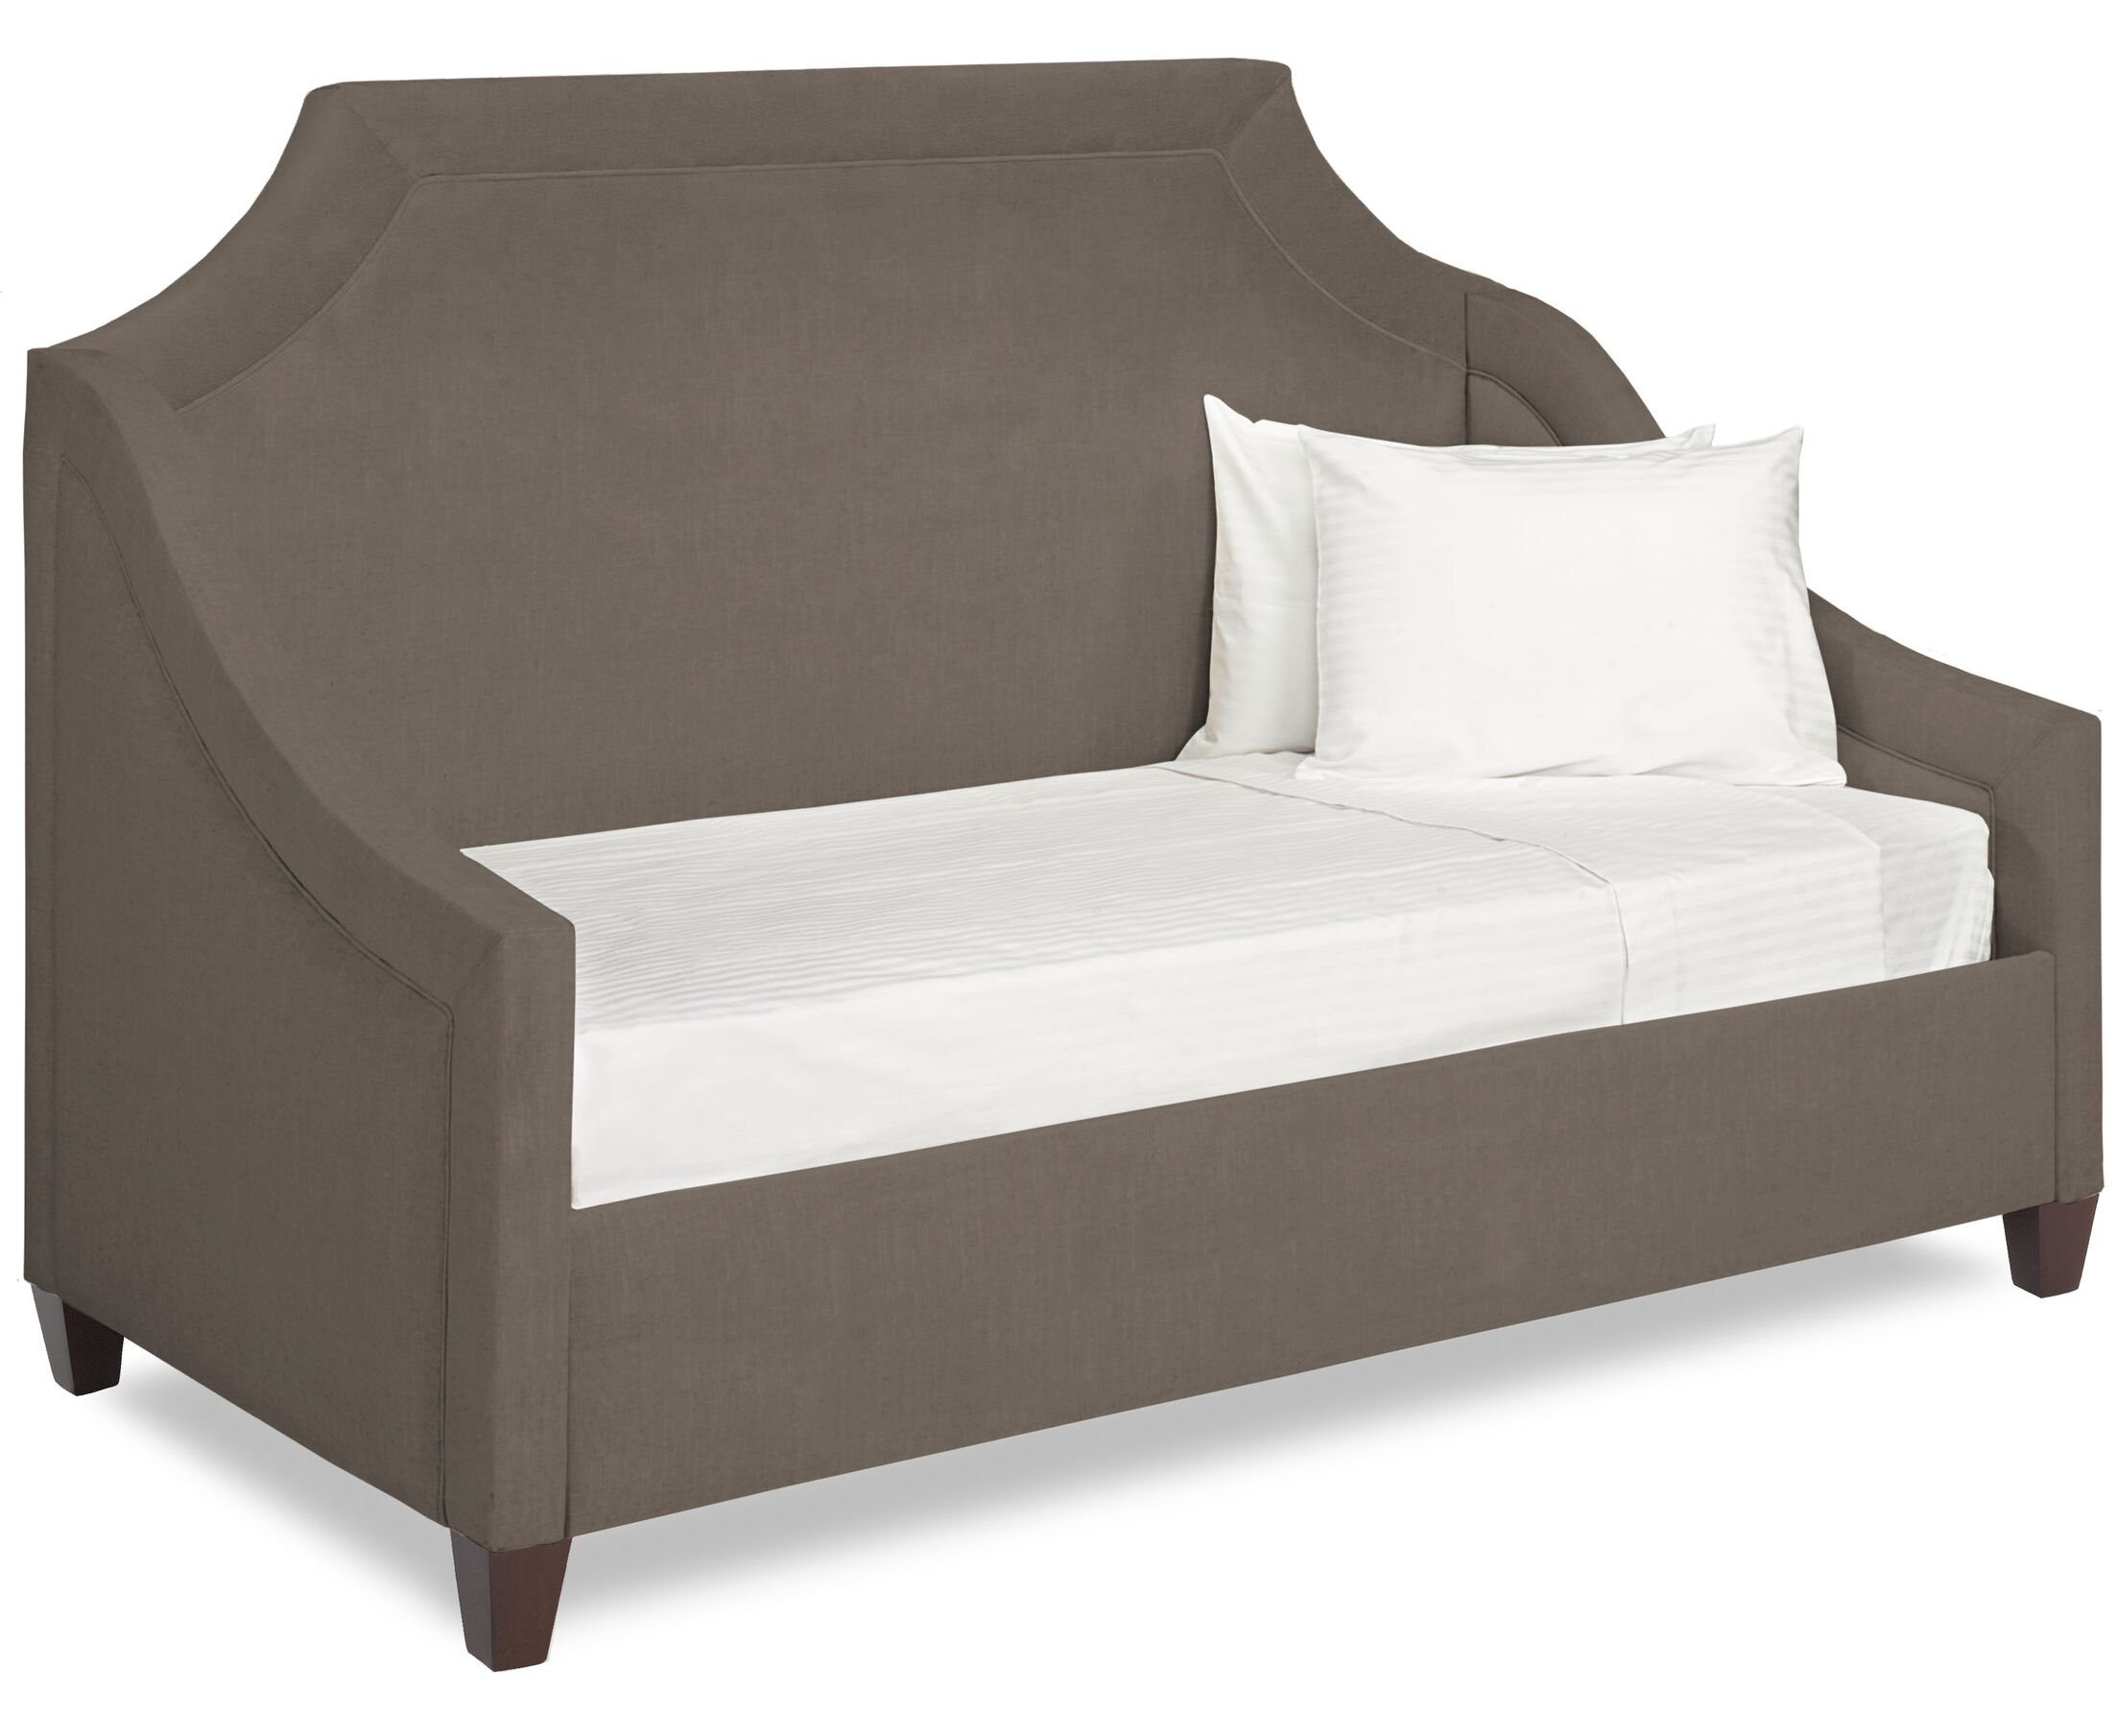 Dreamtime Daybed with Mattress Color: Truffle, Size: Twin XL